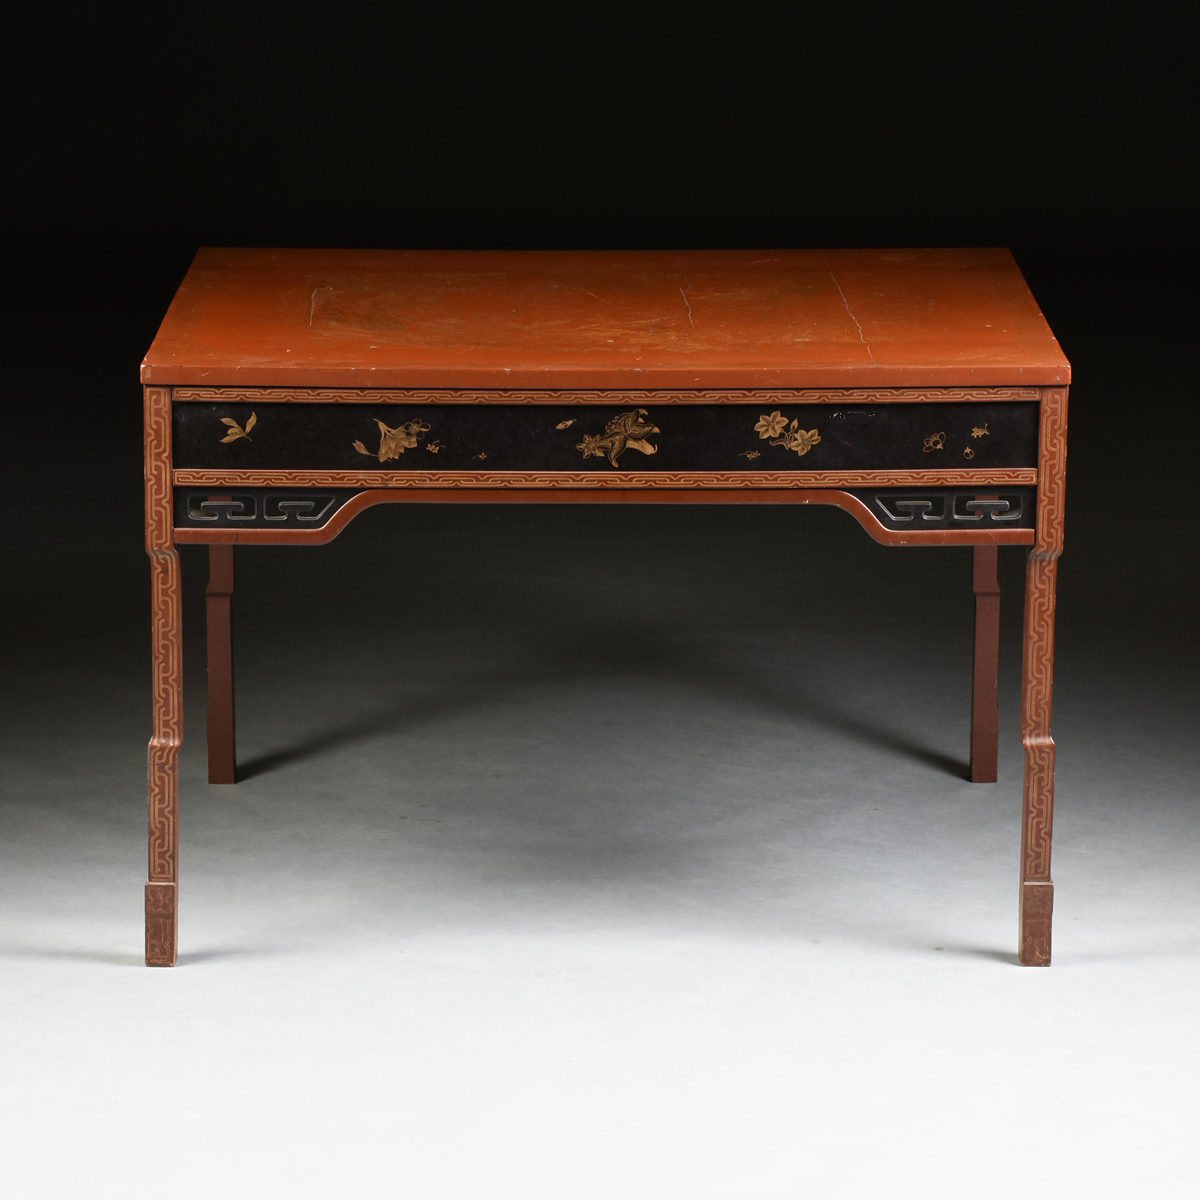 Lot 54 - A JAPANESE PARCEL GILT BURN ORANGE AND BLACK LACQUERED CENTER TABLE, SIGNED, CIRCA 1920, the